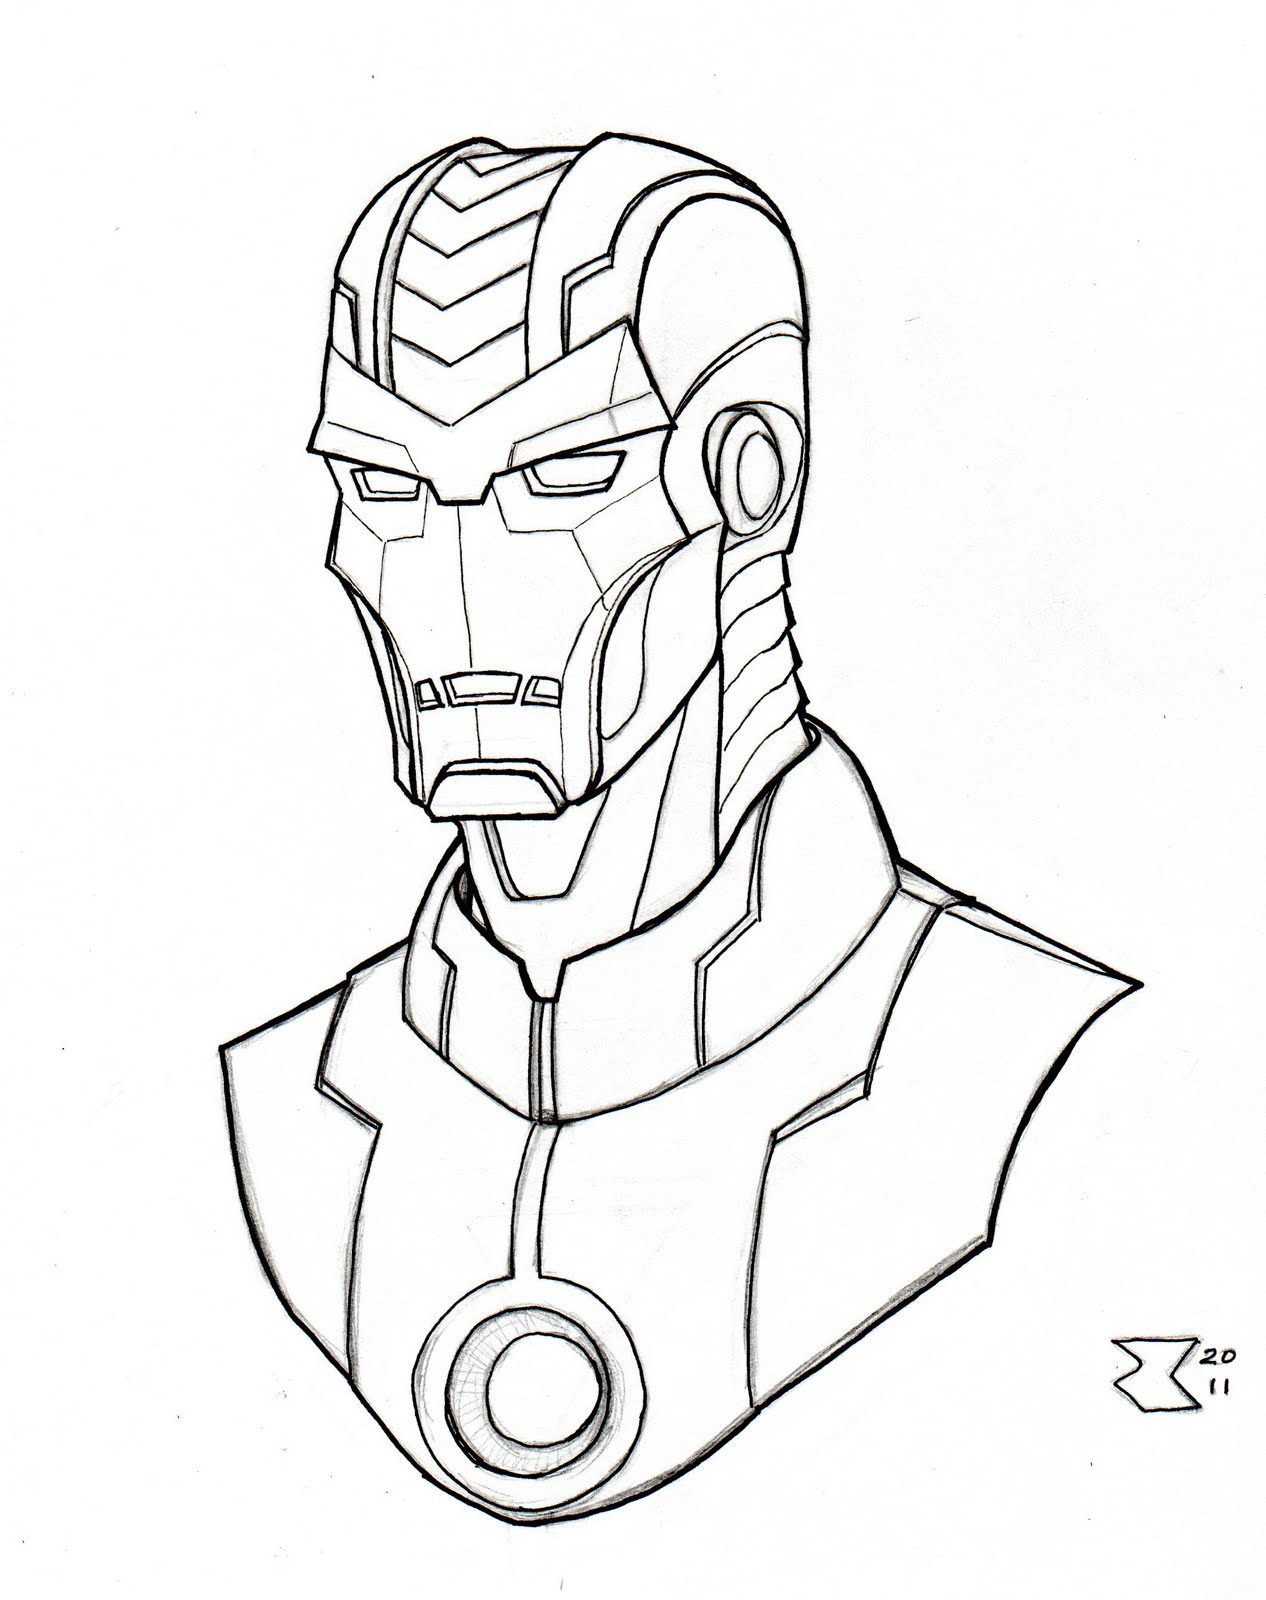 Games coloring ultraman - I Finished The Inks For Iron Man Here First Started The Pencils As A Second Drawing During My Last Gaming Session With The Boys